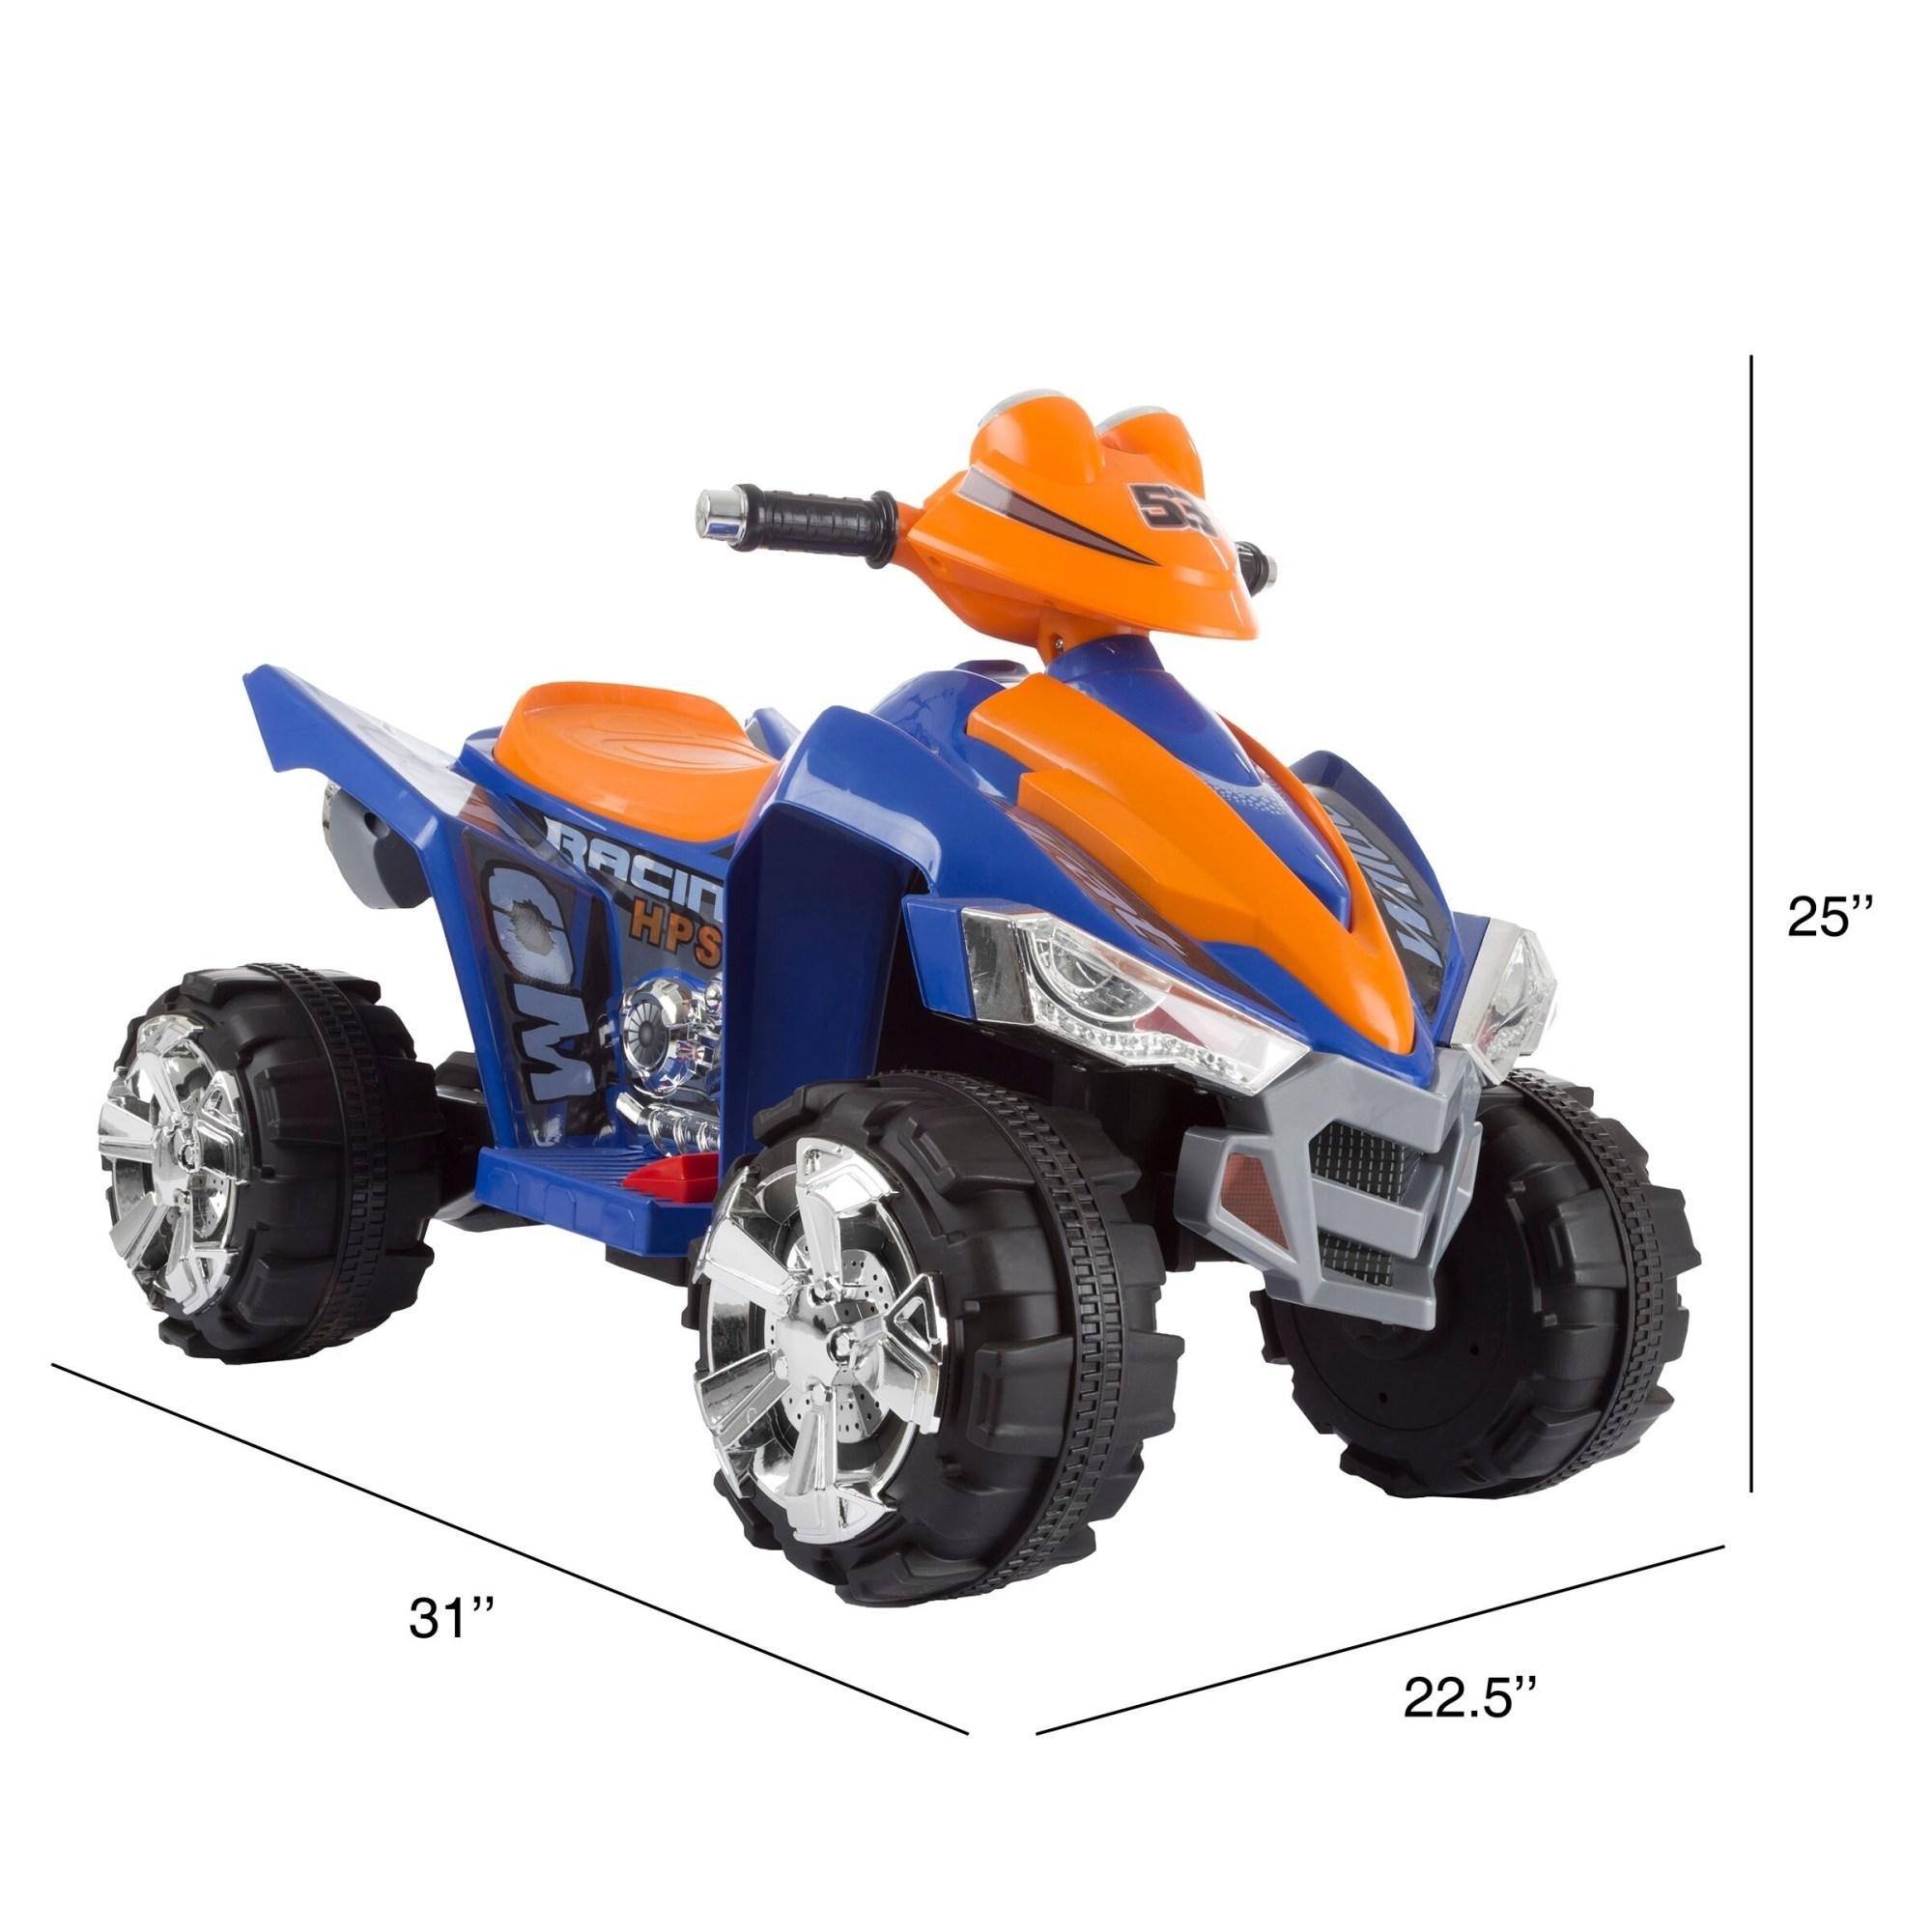 hight resolution of shop battery powered ride on toy atv four wheeler with sound effects by lil rider blue orange free shipping today overstock com 20710204